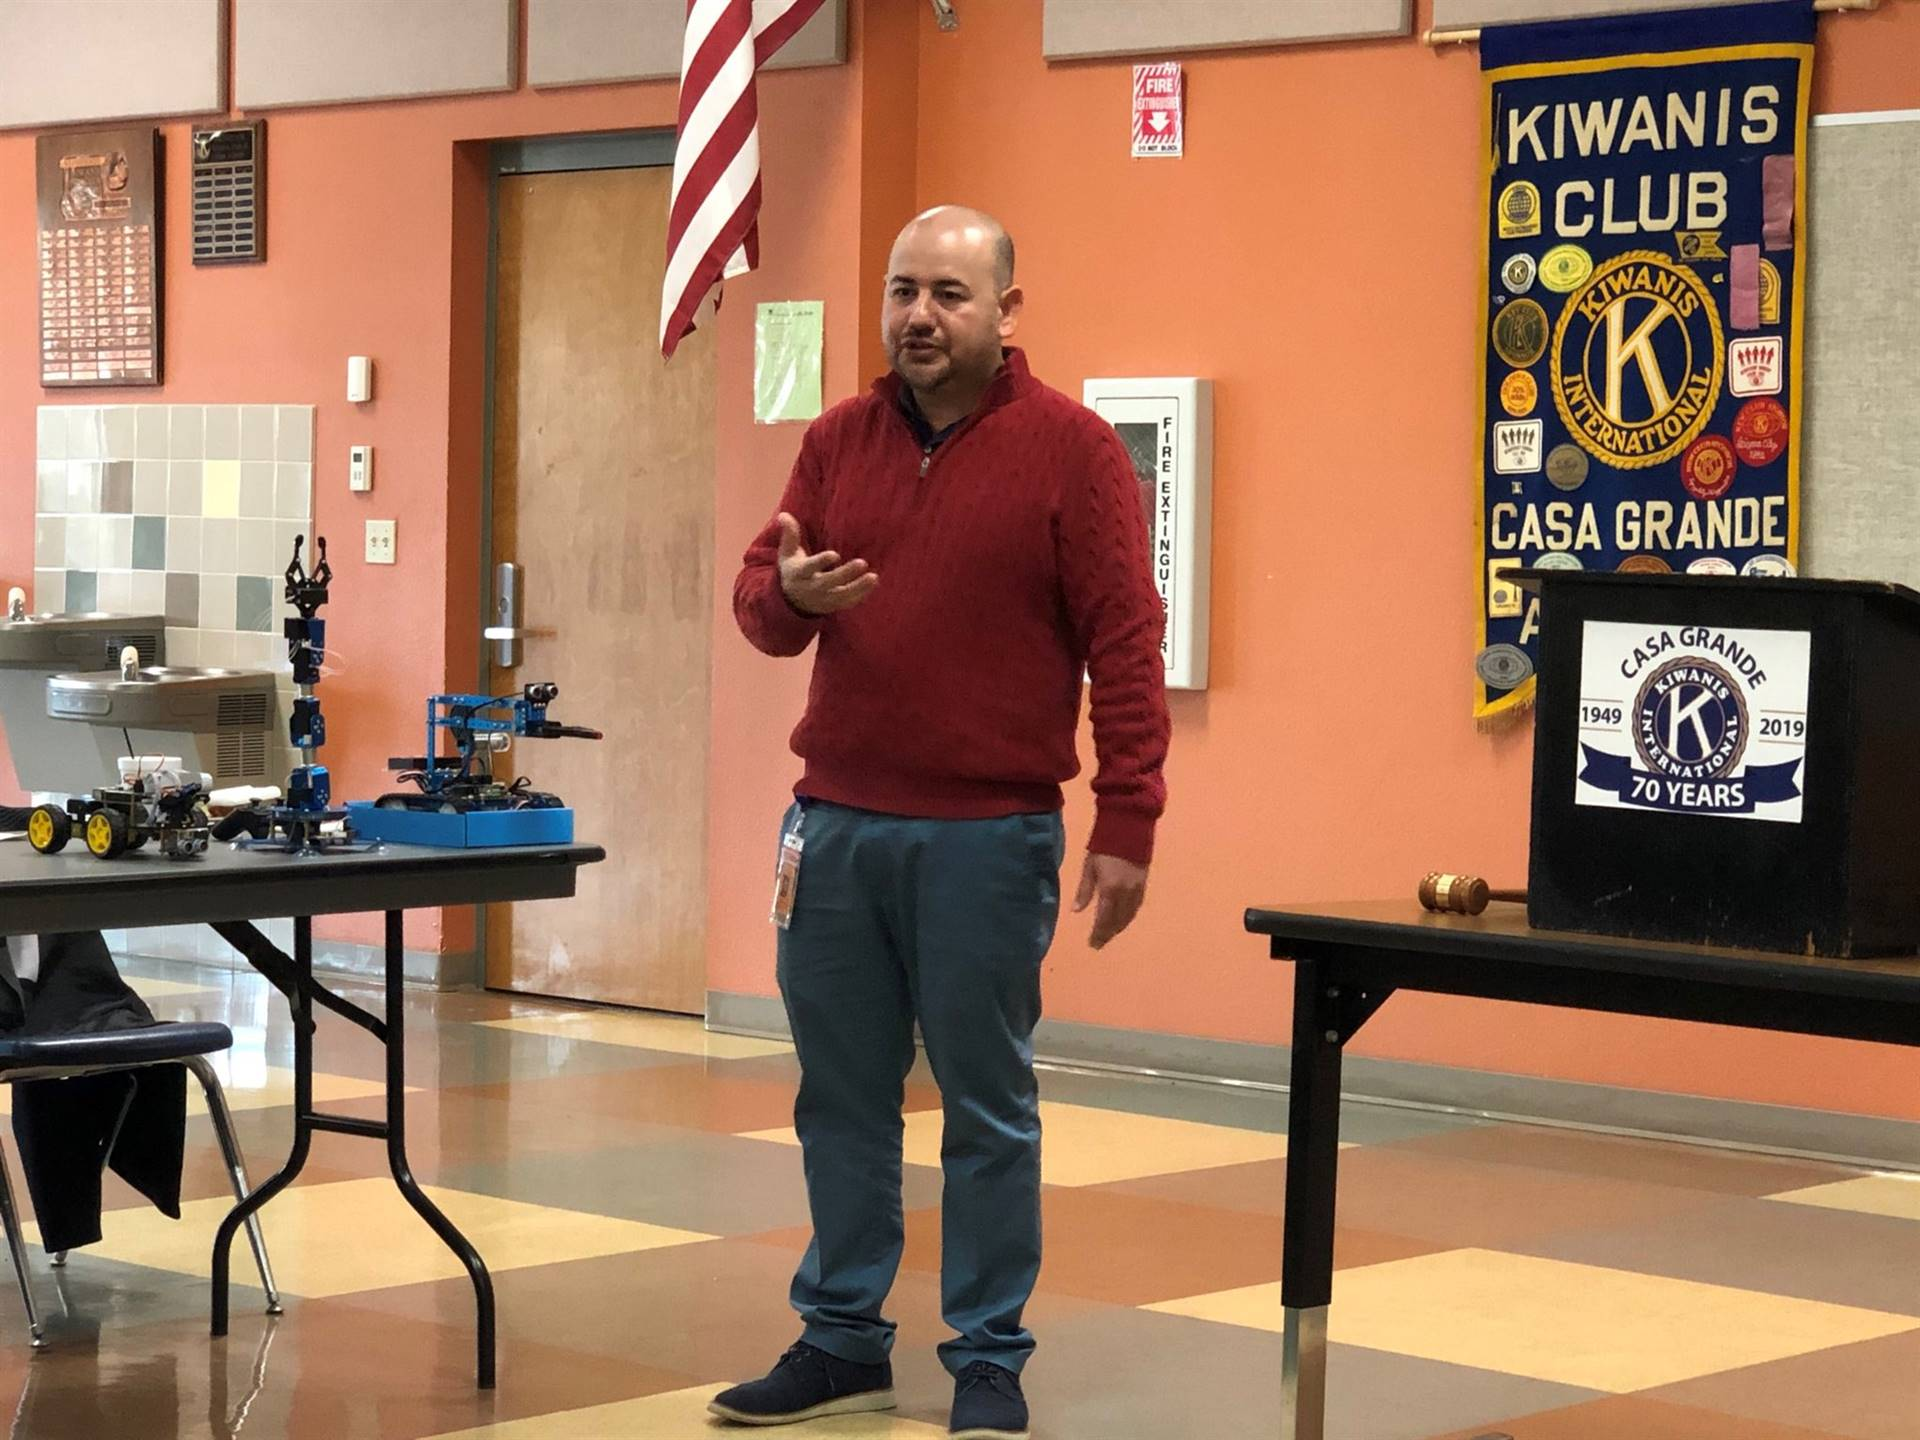 Kiwanis Club Meeting 20191212